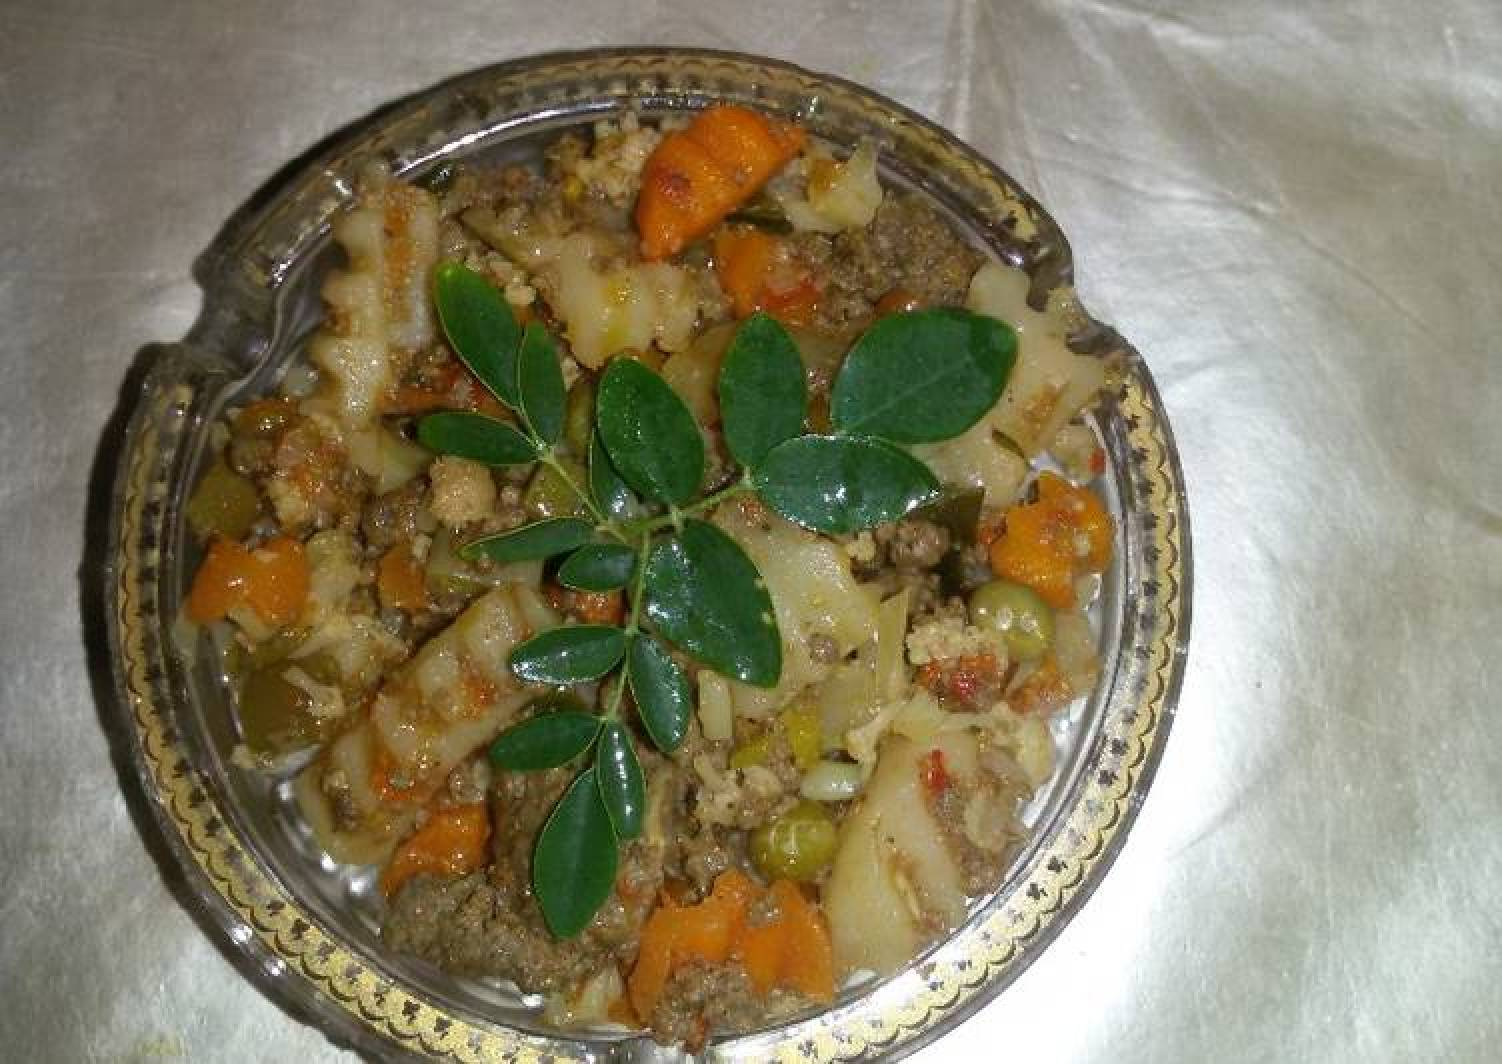 Veggies with mince meat